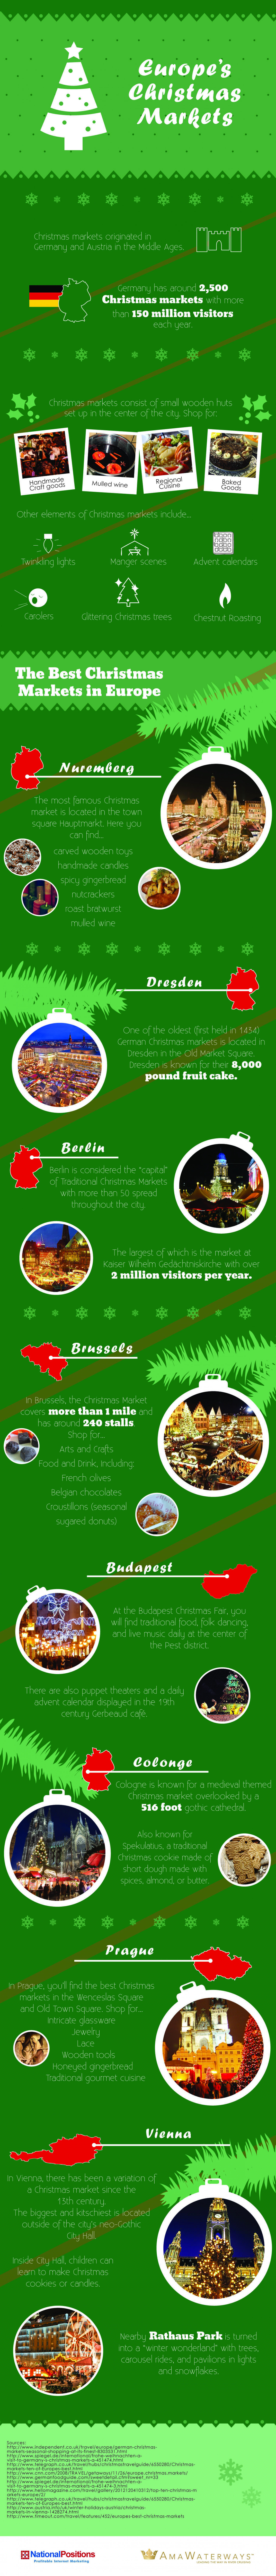 Europes Christmas Markets Infographic